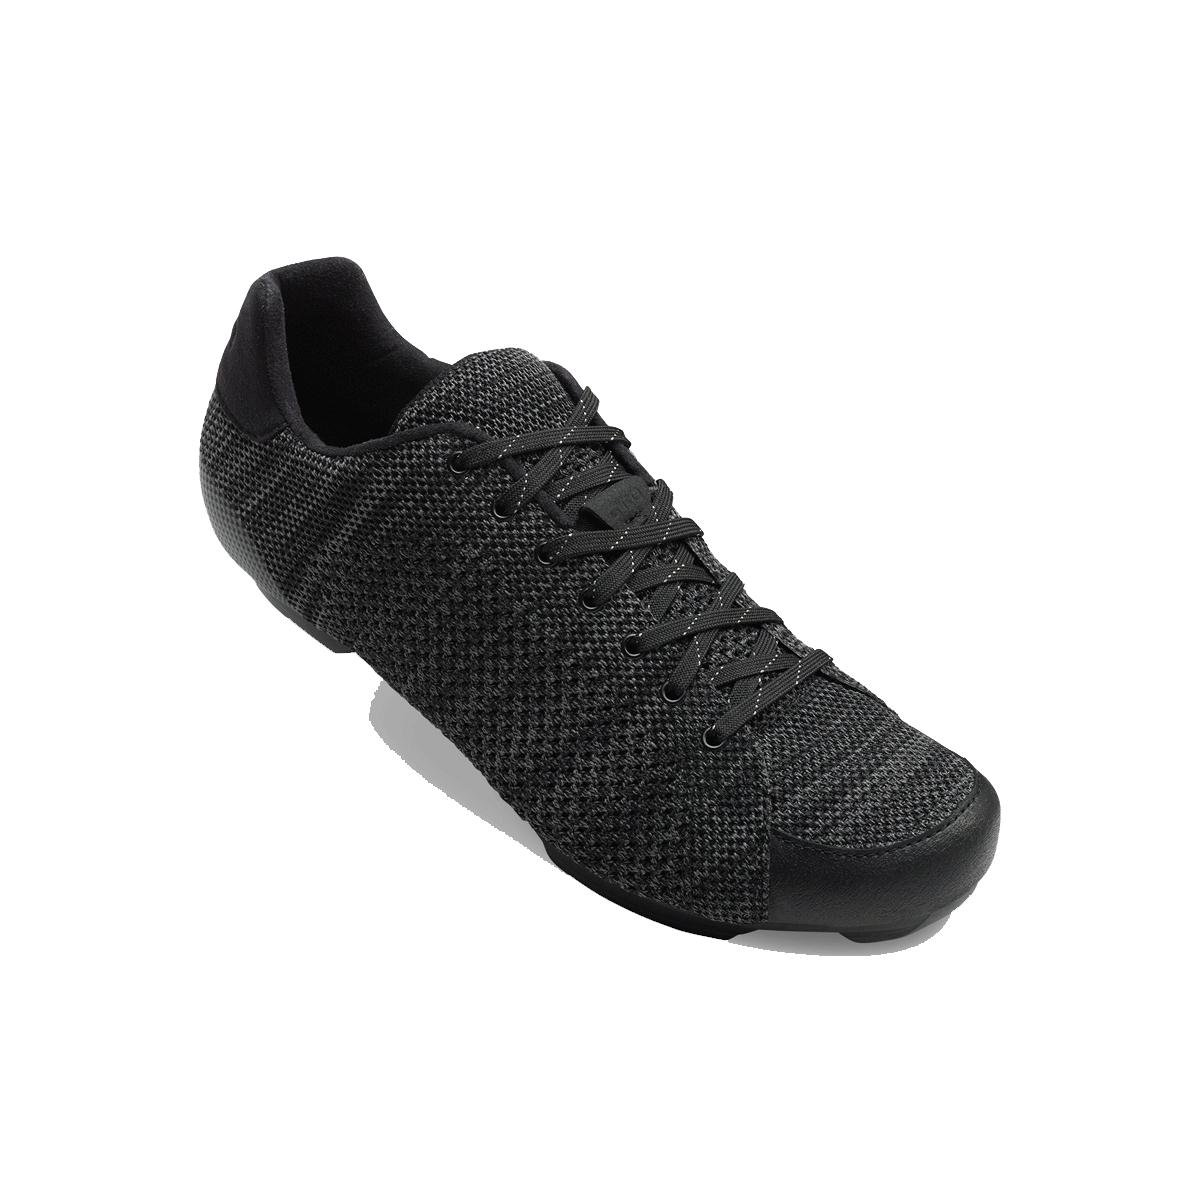 Giro Republic Reflective Knit Cycling Shoes - Men's 7090379